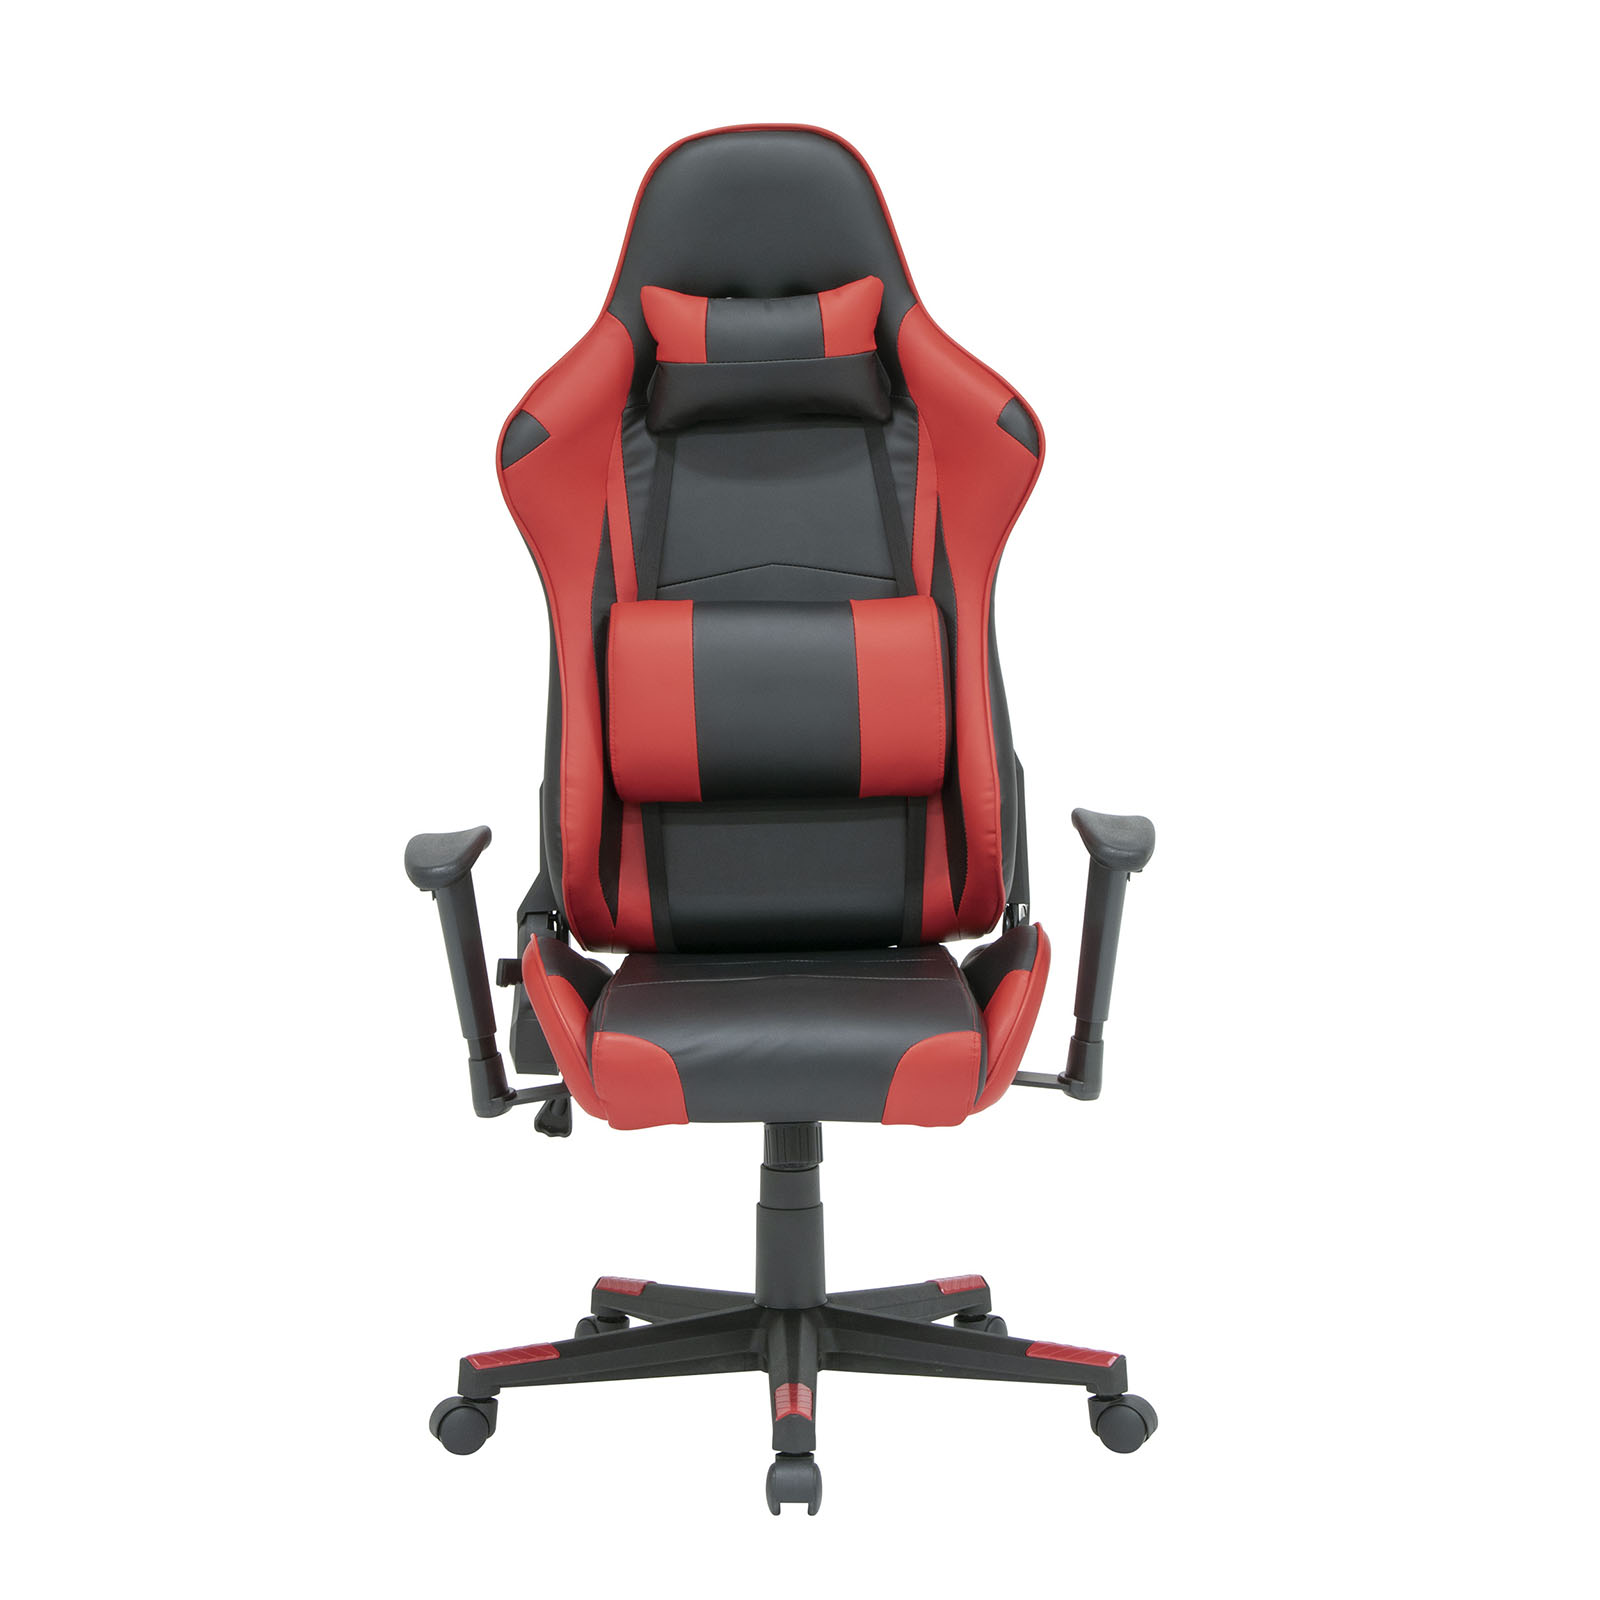 10660 High Back Gaming Chair front